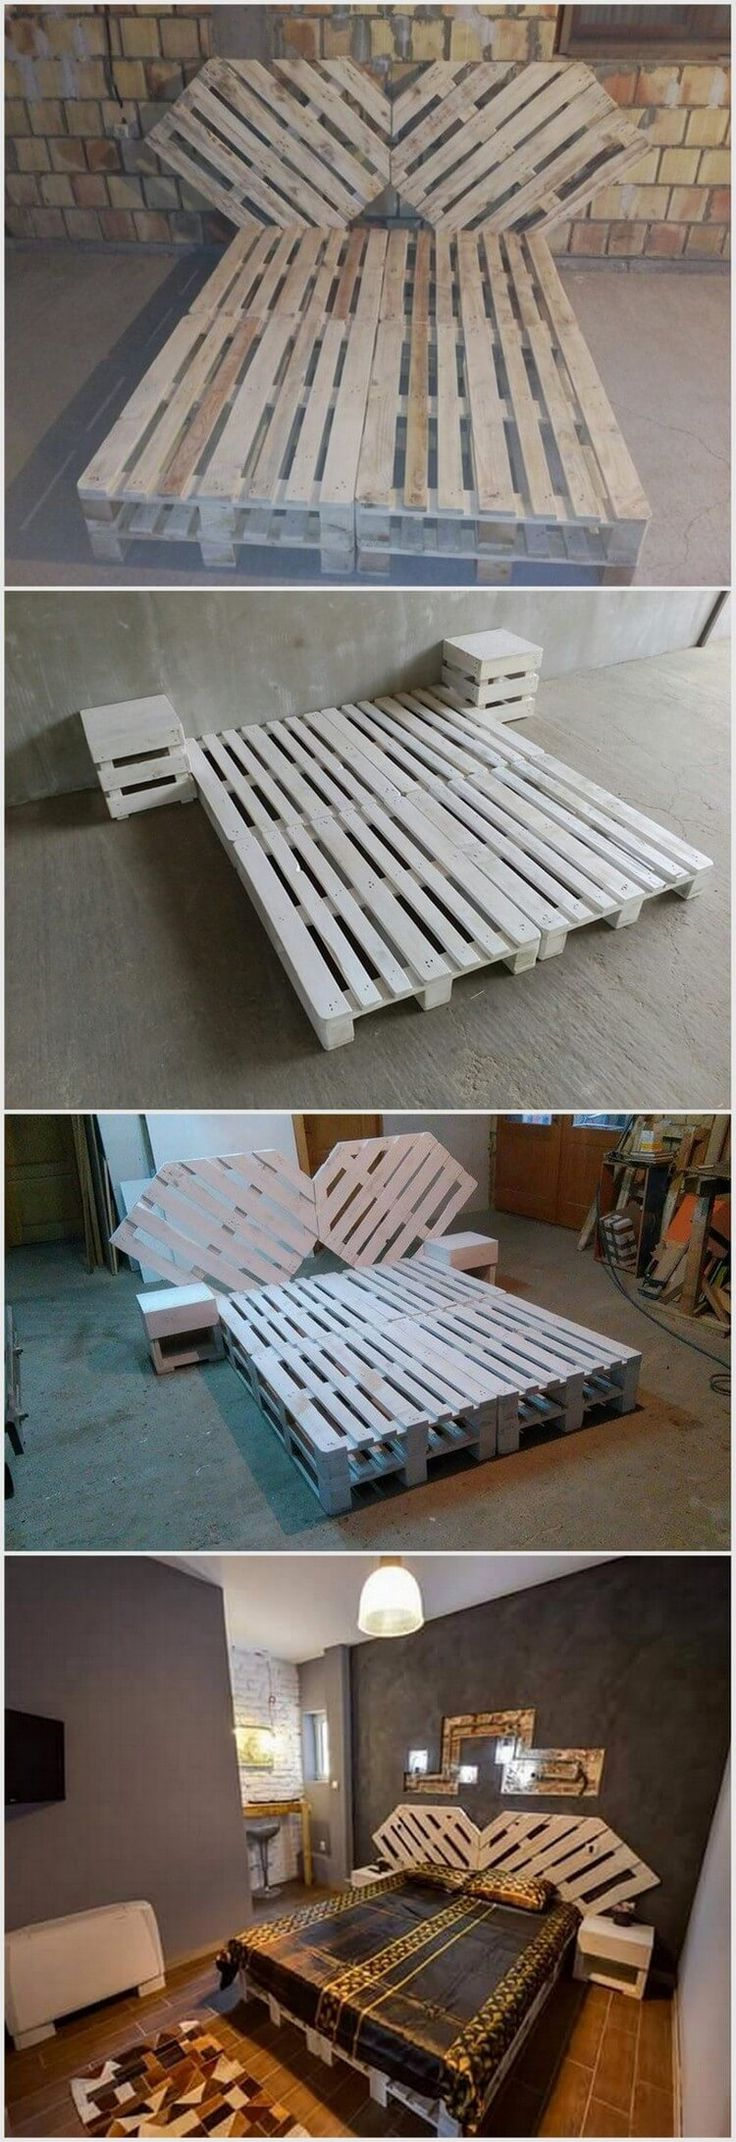 Wood Pallet Bed with Unique Style Headboard